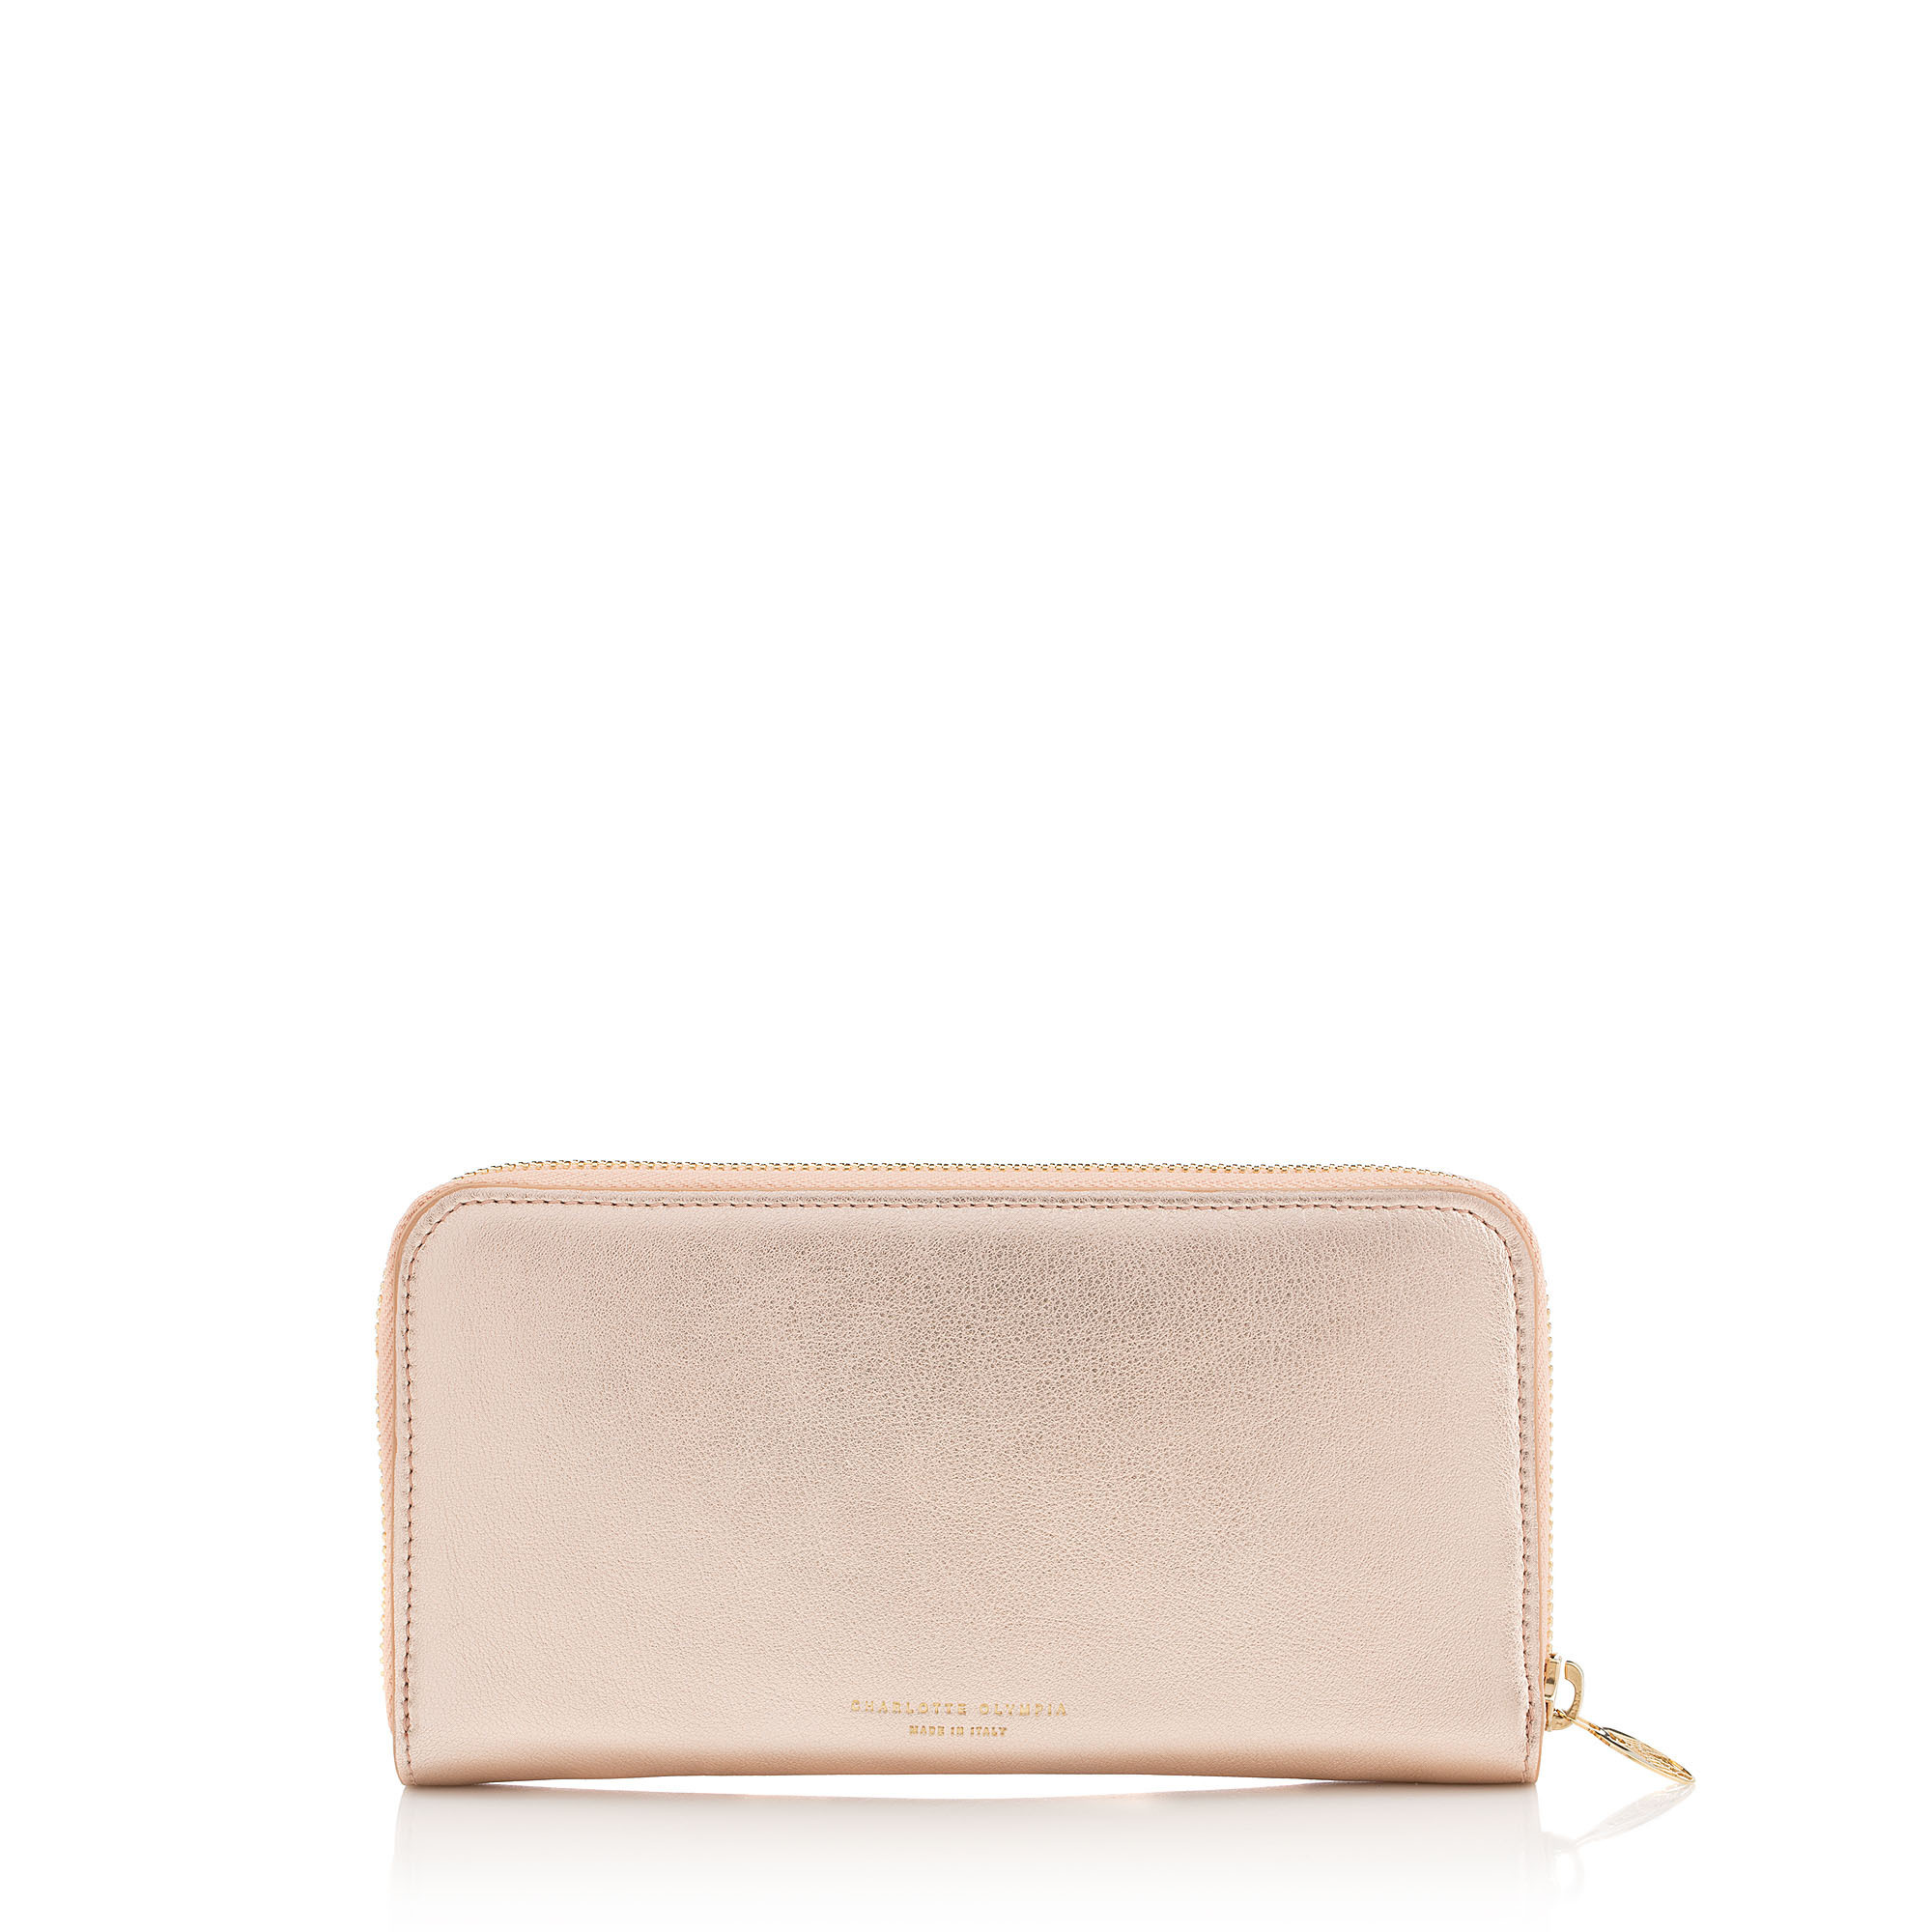 shop charlotte olympia wallets & card holders